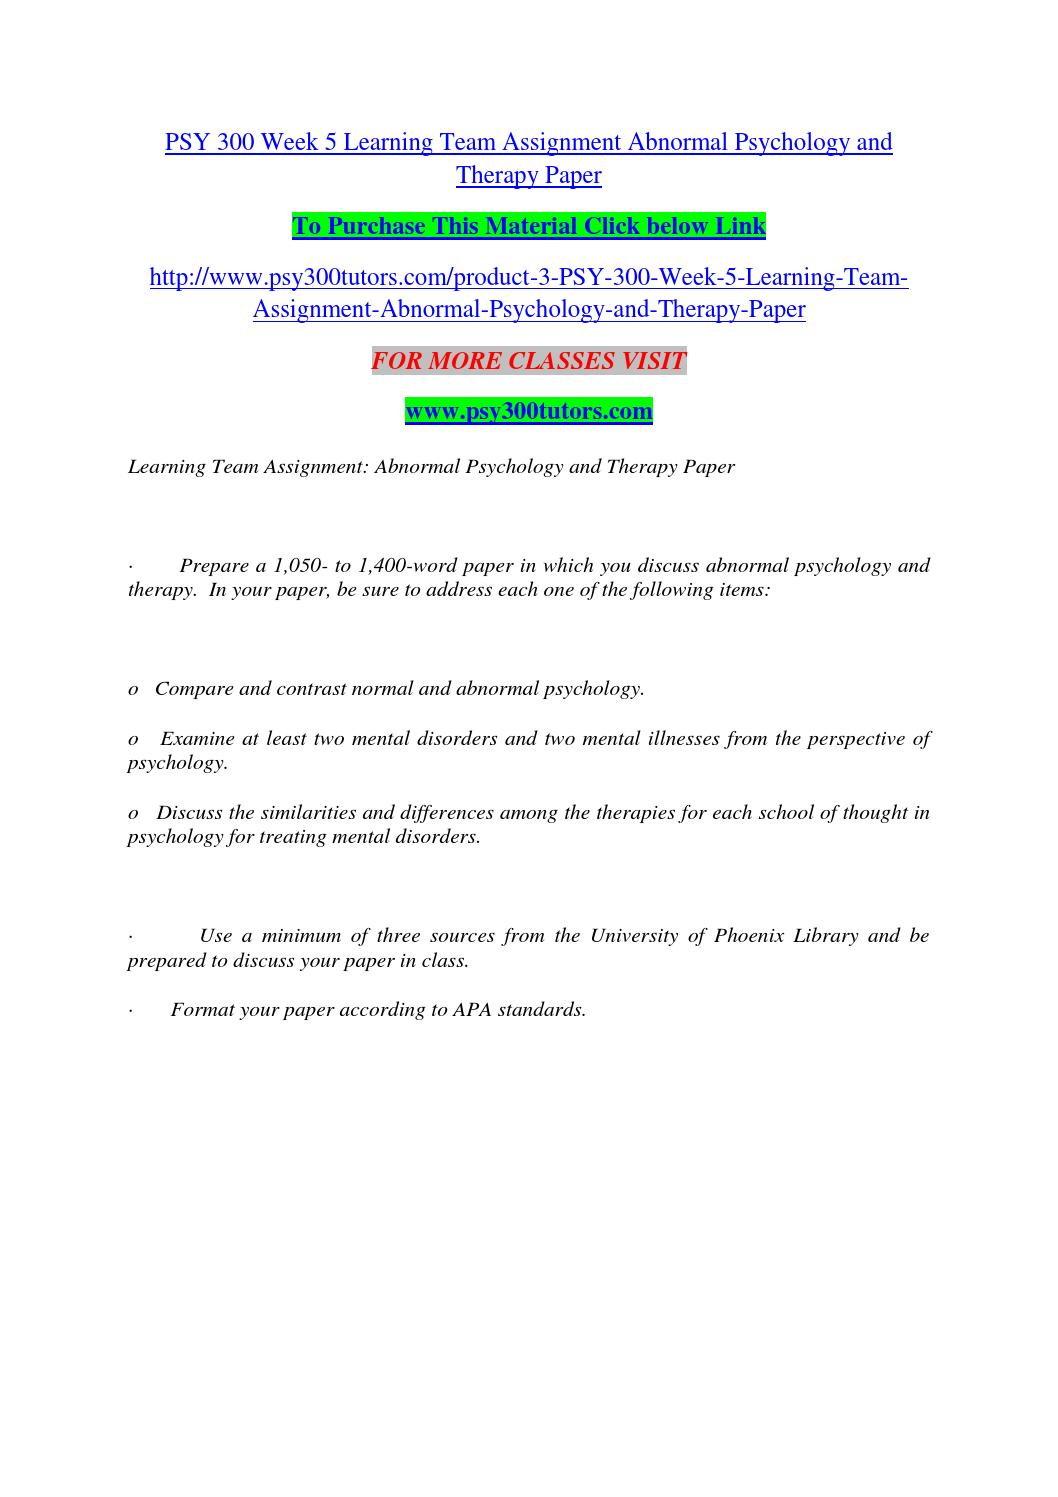 psy 300 learning team abnormal psychology and therapy View essay - psy 300 week 5 learning team assignment abnormal psychology and therapy paper from psy 300 psy 300 at university of phoenix abnormal psychology and therapy learning team.